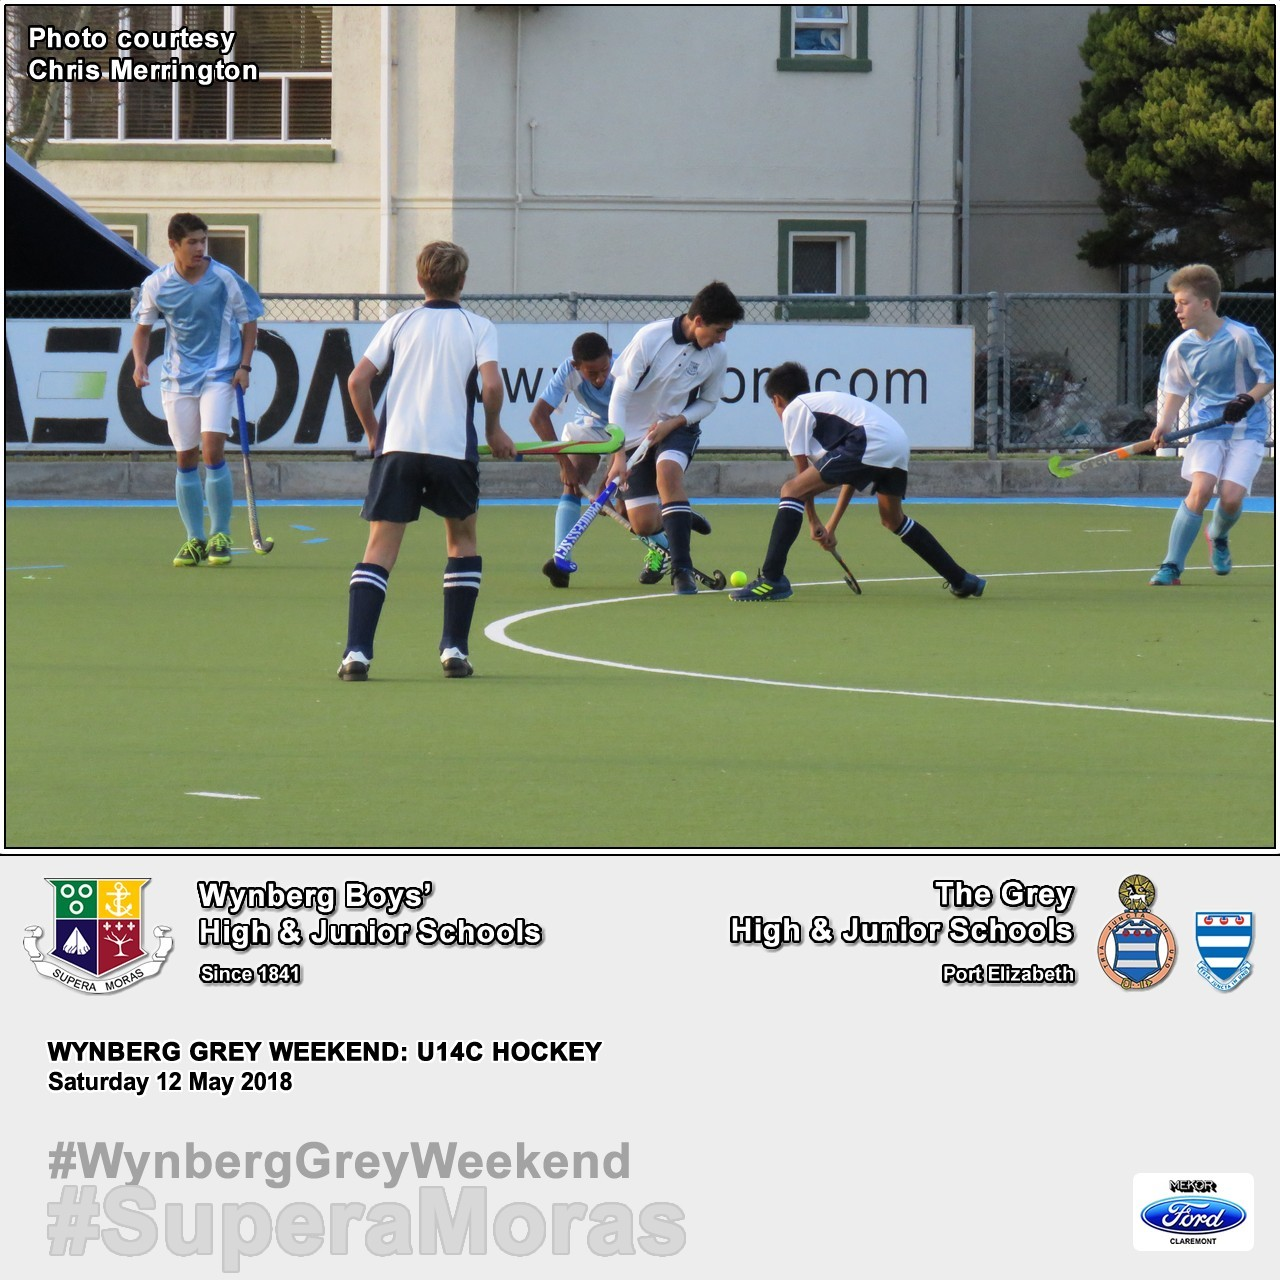 U14C vs Grey High, Saturday 12 May 2018